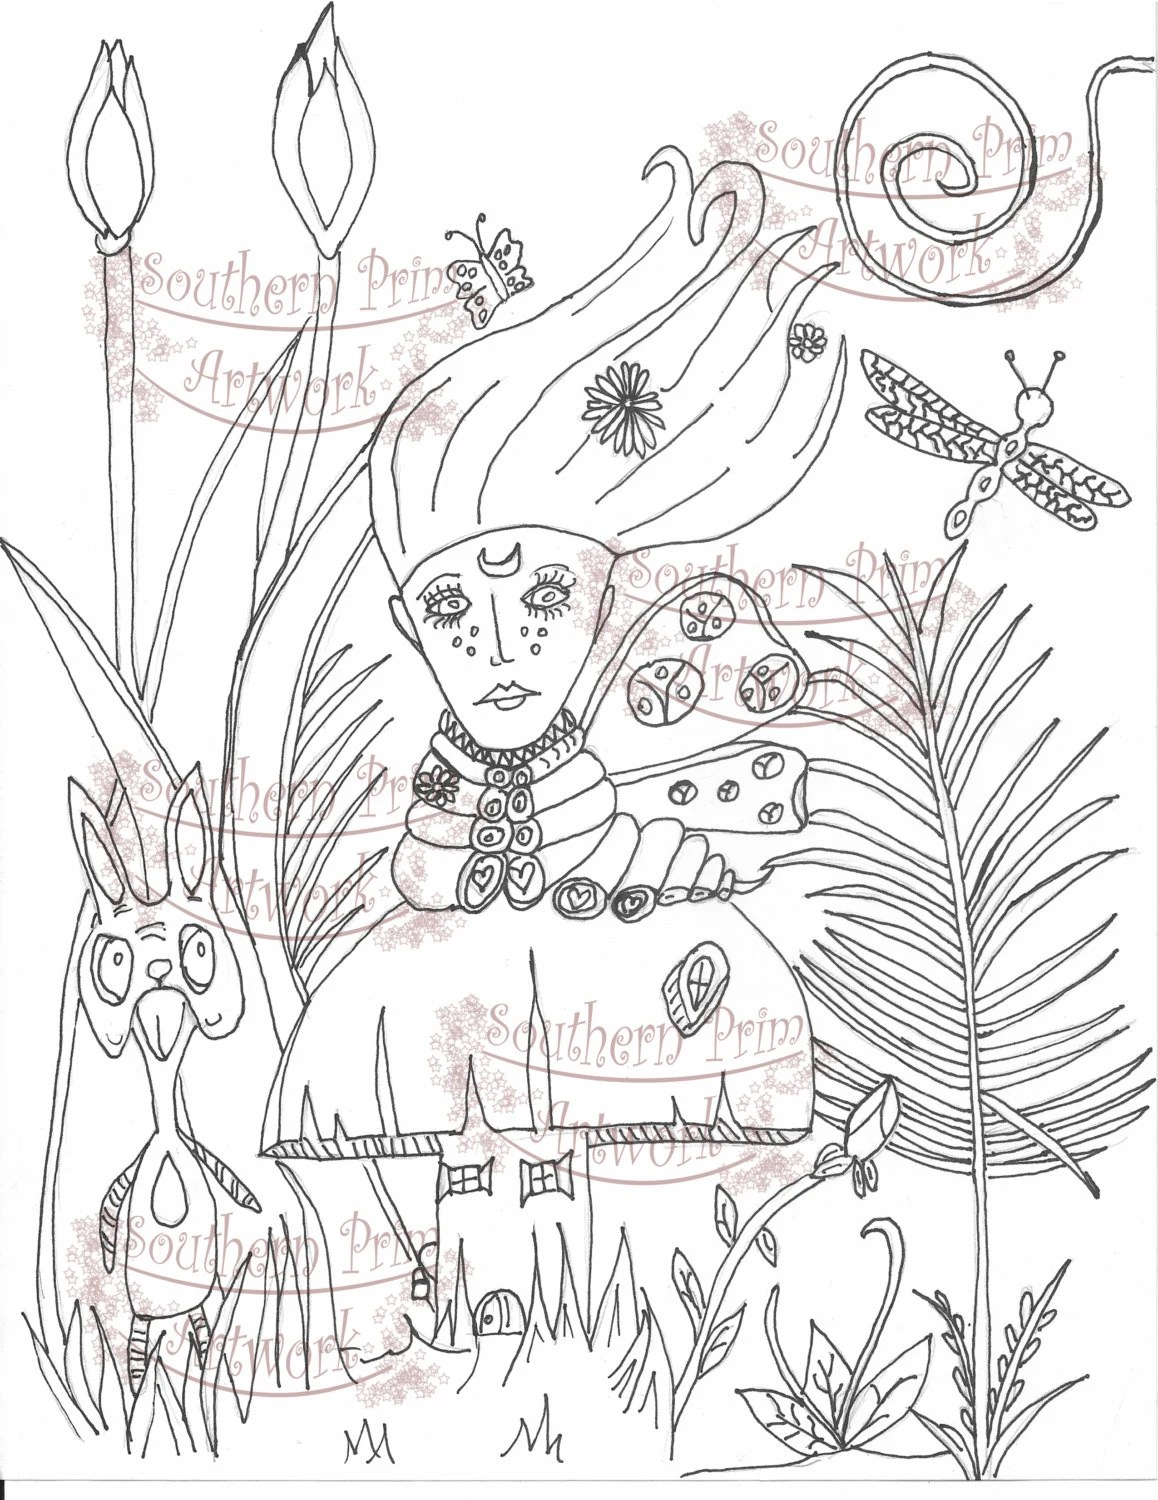 Fantasy Caterpillar Alice in Wonderland Adult Coloring Page